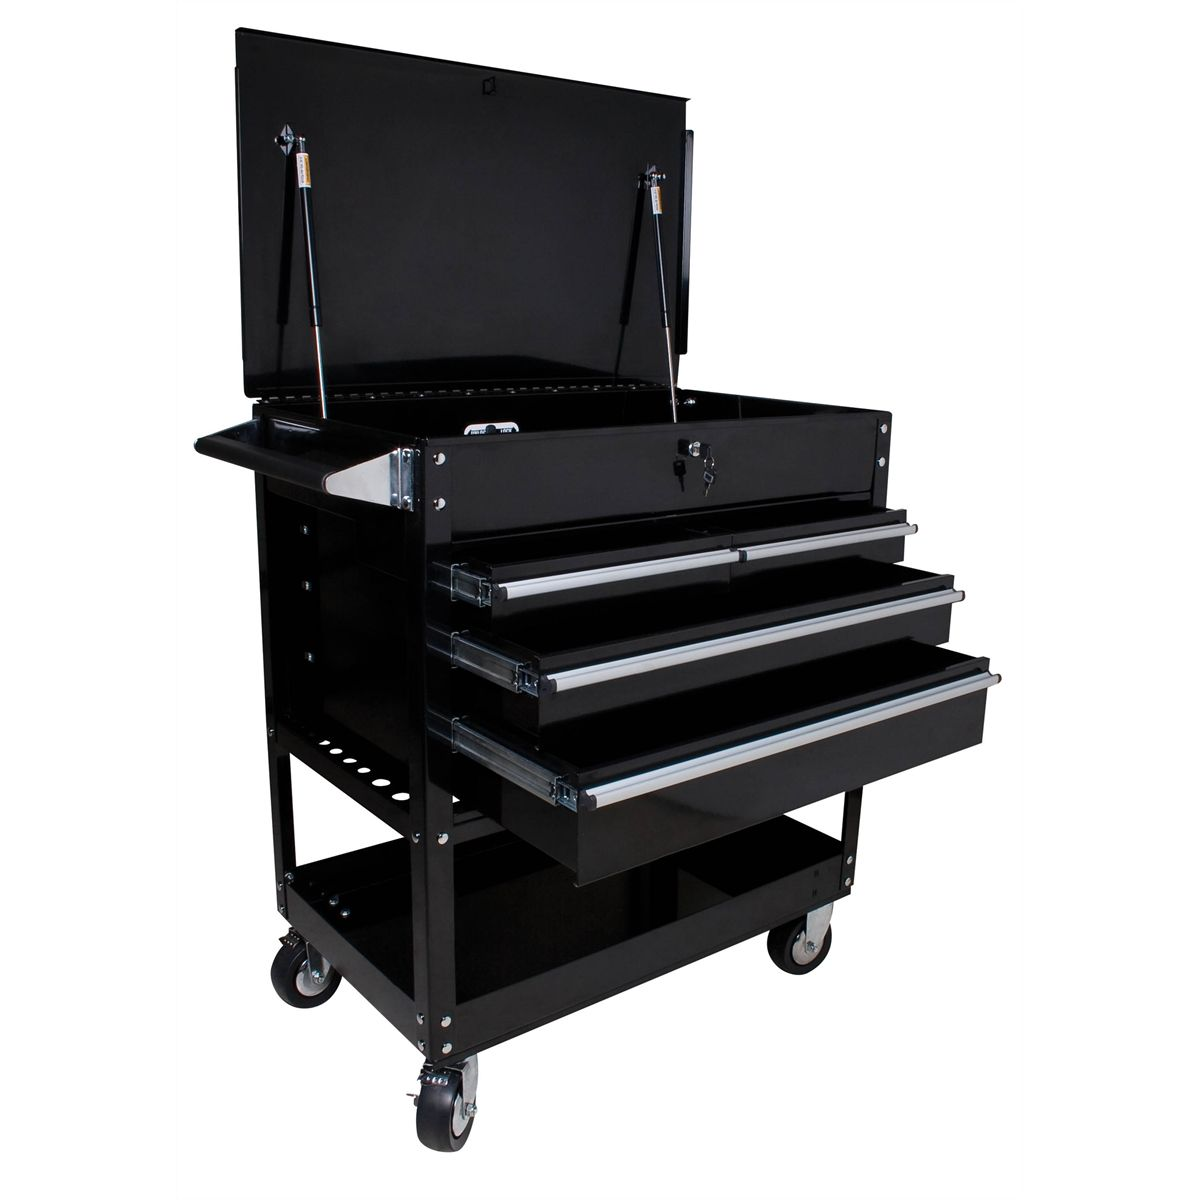 4 Drawer Locking Top Service Cart  Black  Sunex Tools